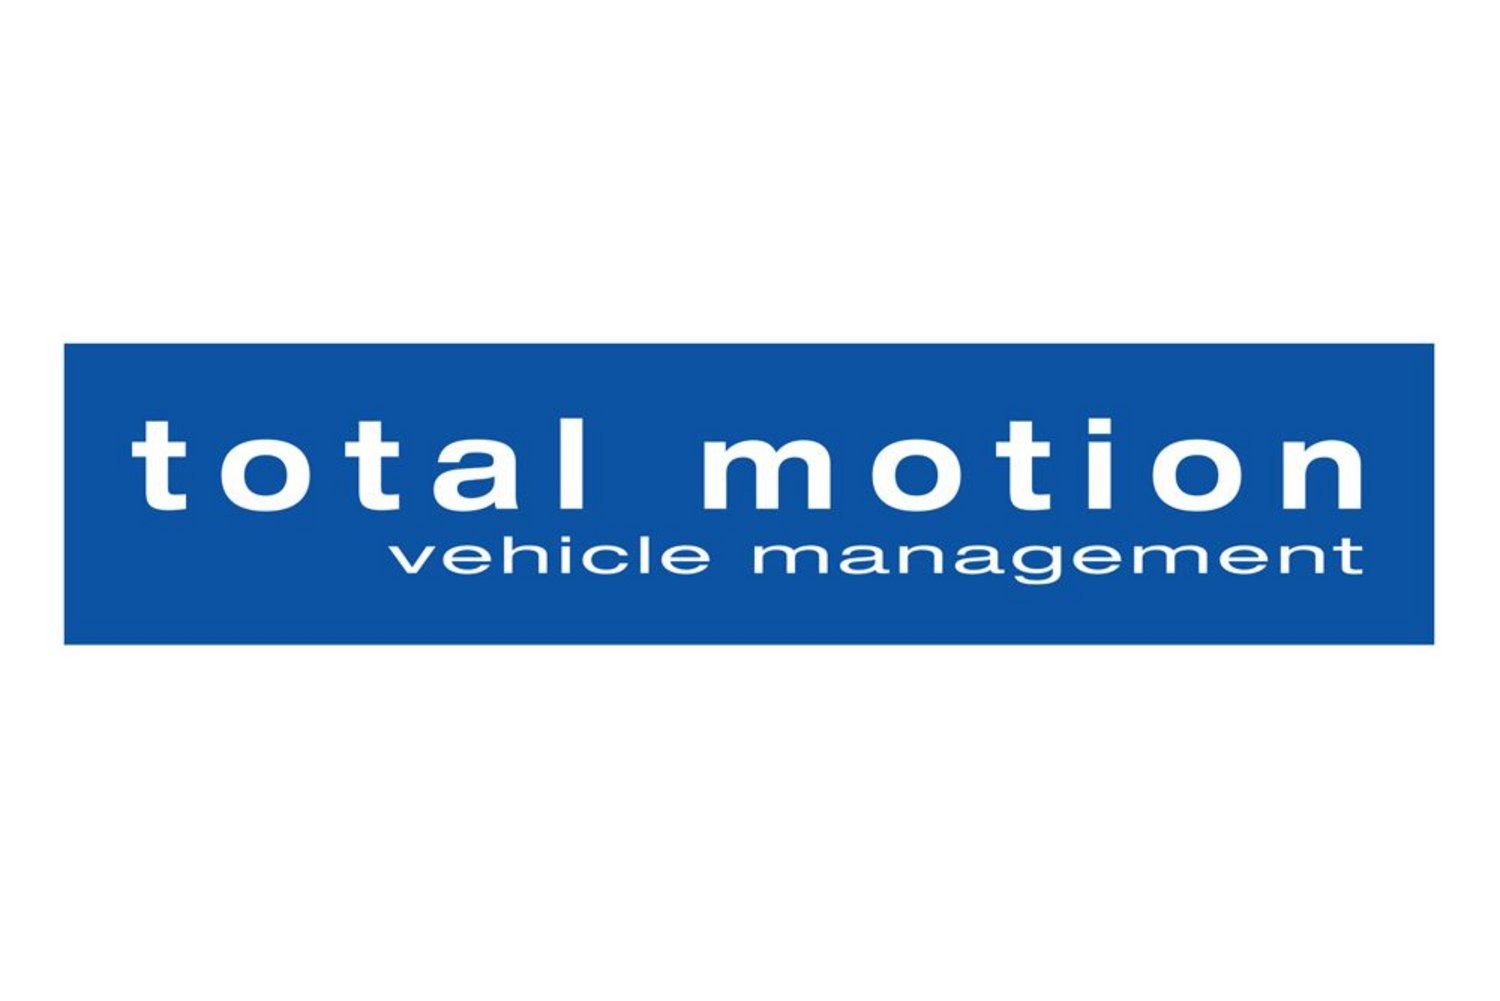 Total Motion logo